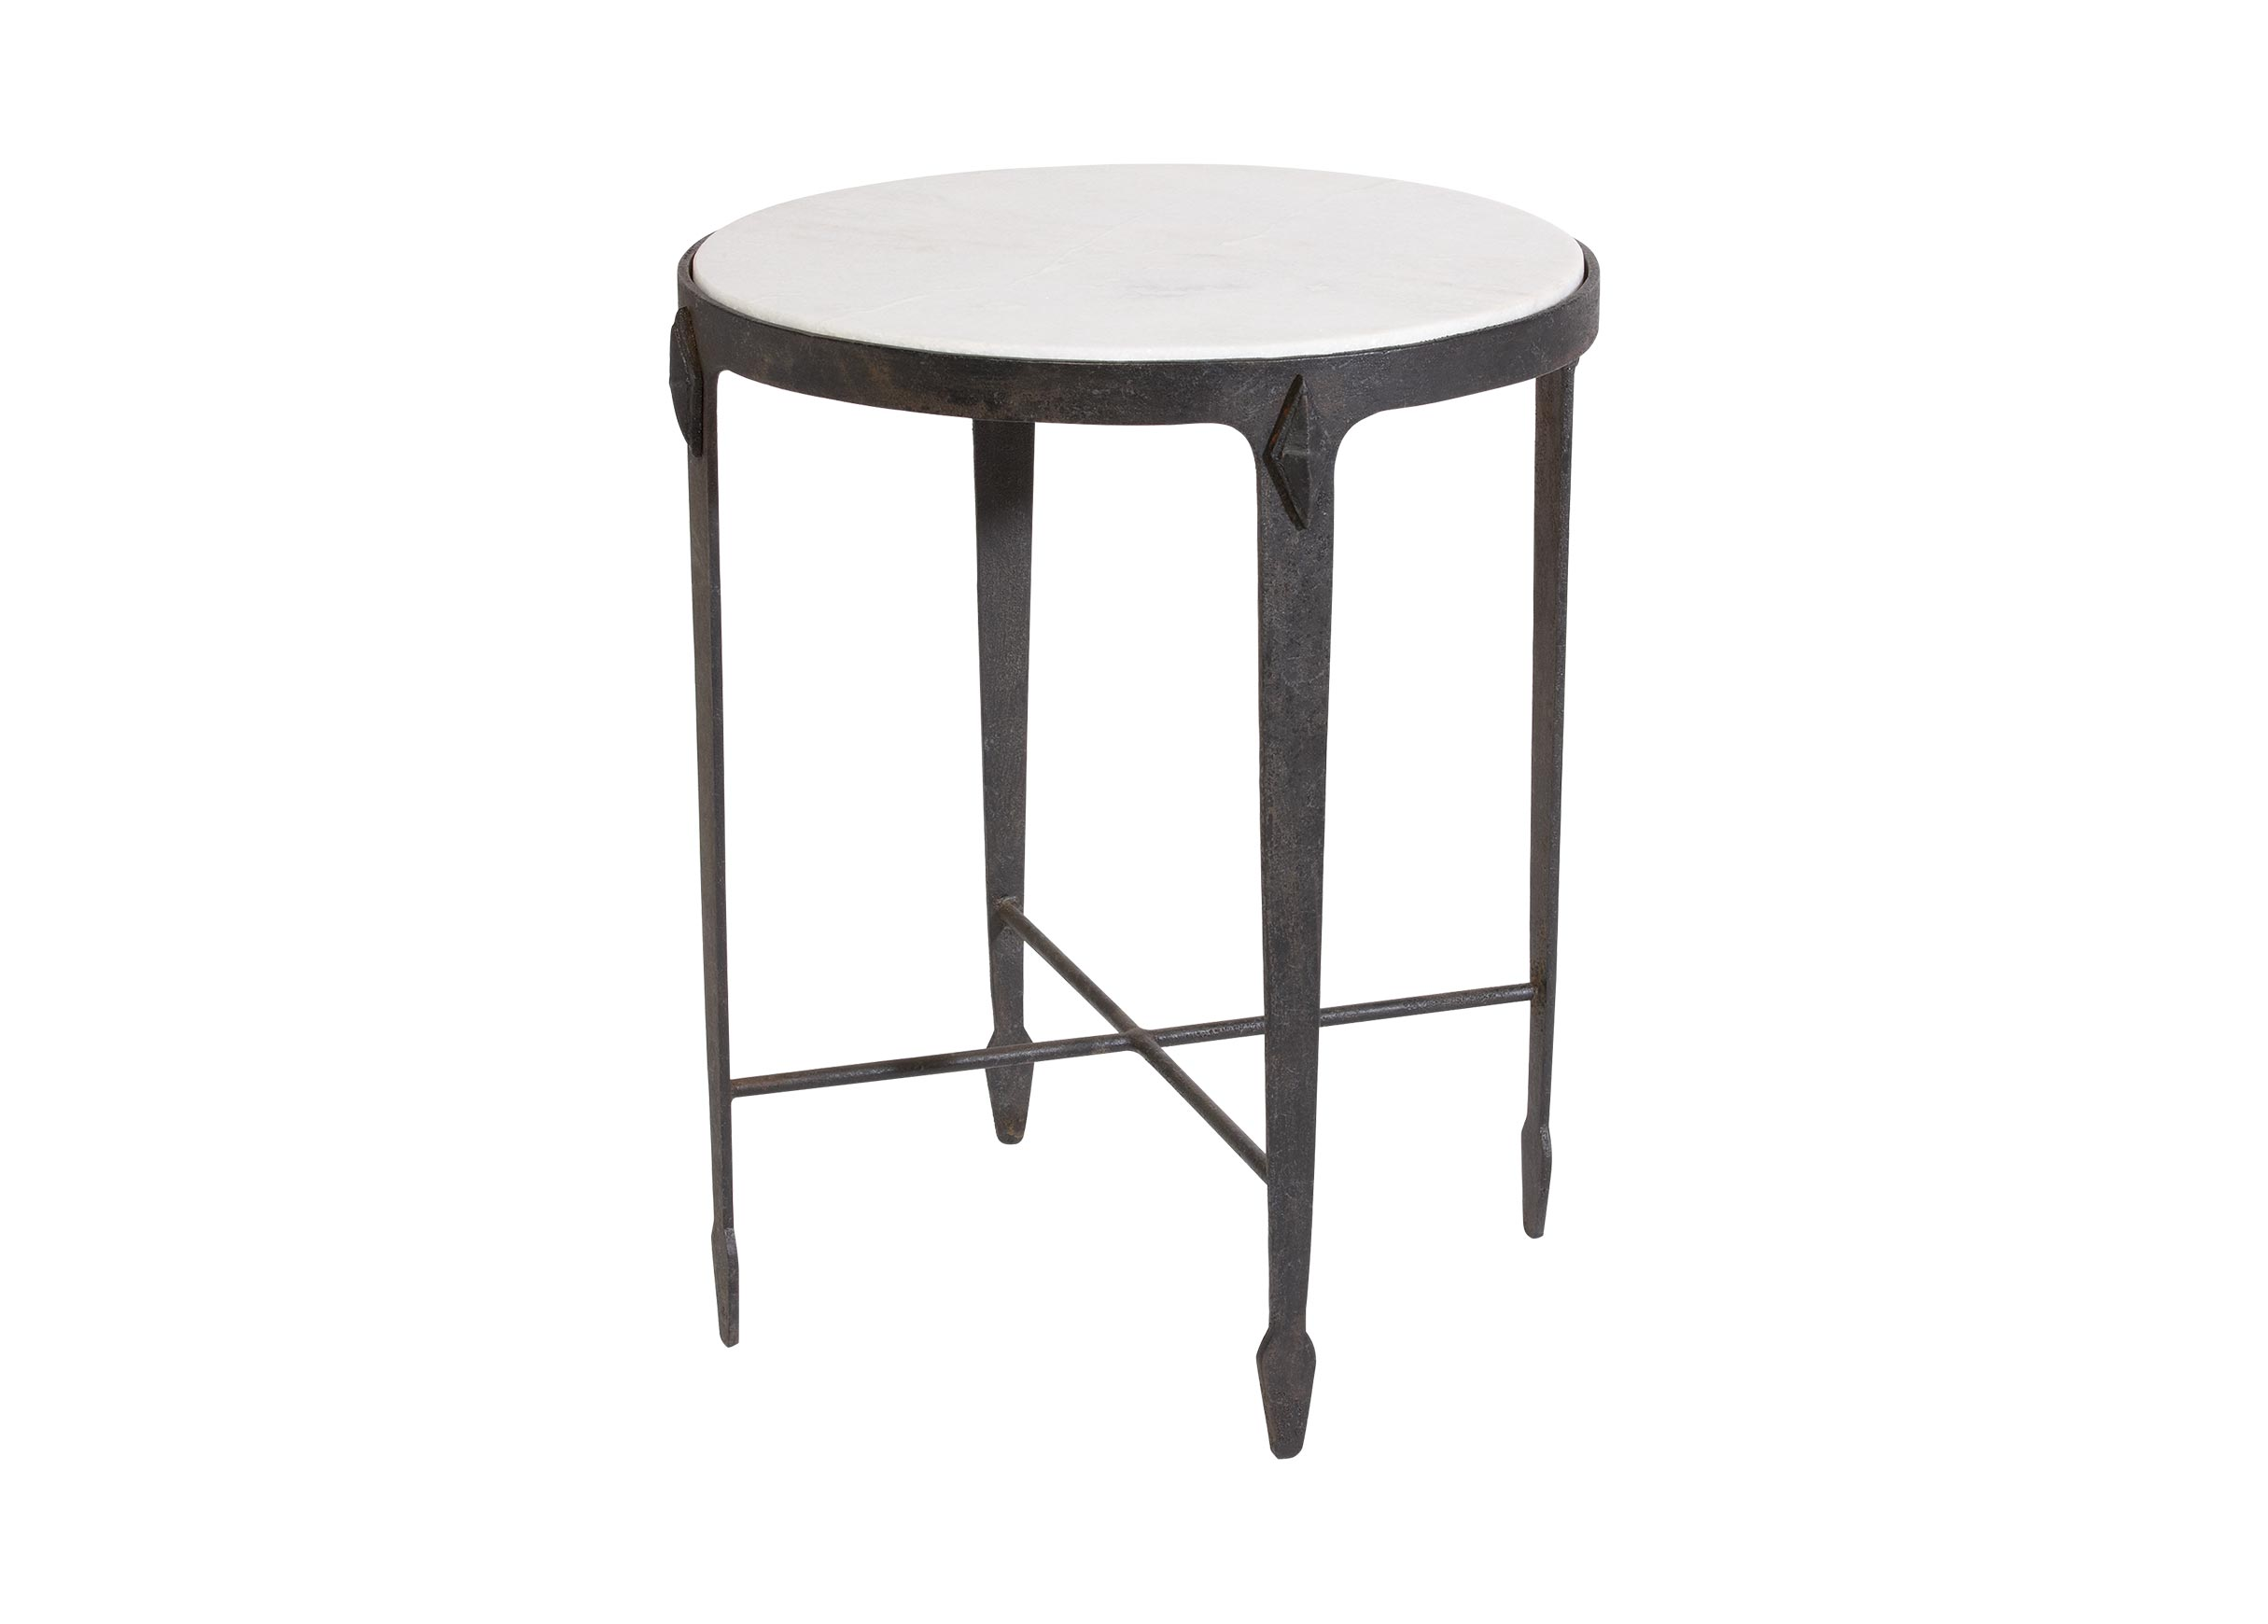 marble top end tables house design french accent table jaca ethan allen nate berkus round gold with and wood linen placemats napkins storage cube coffee antique ashley furniture